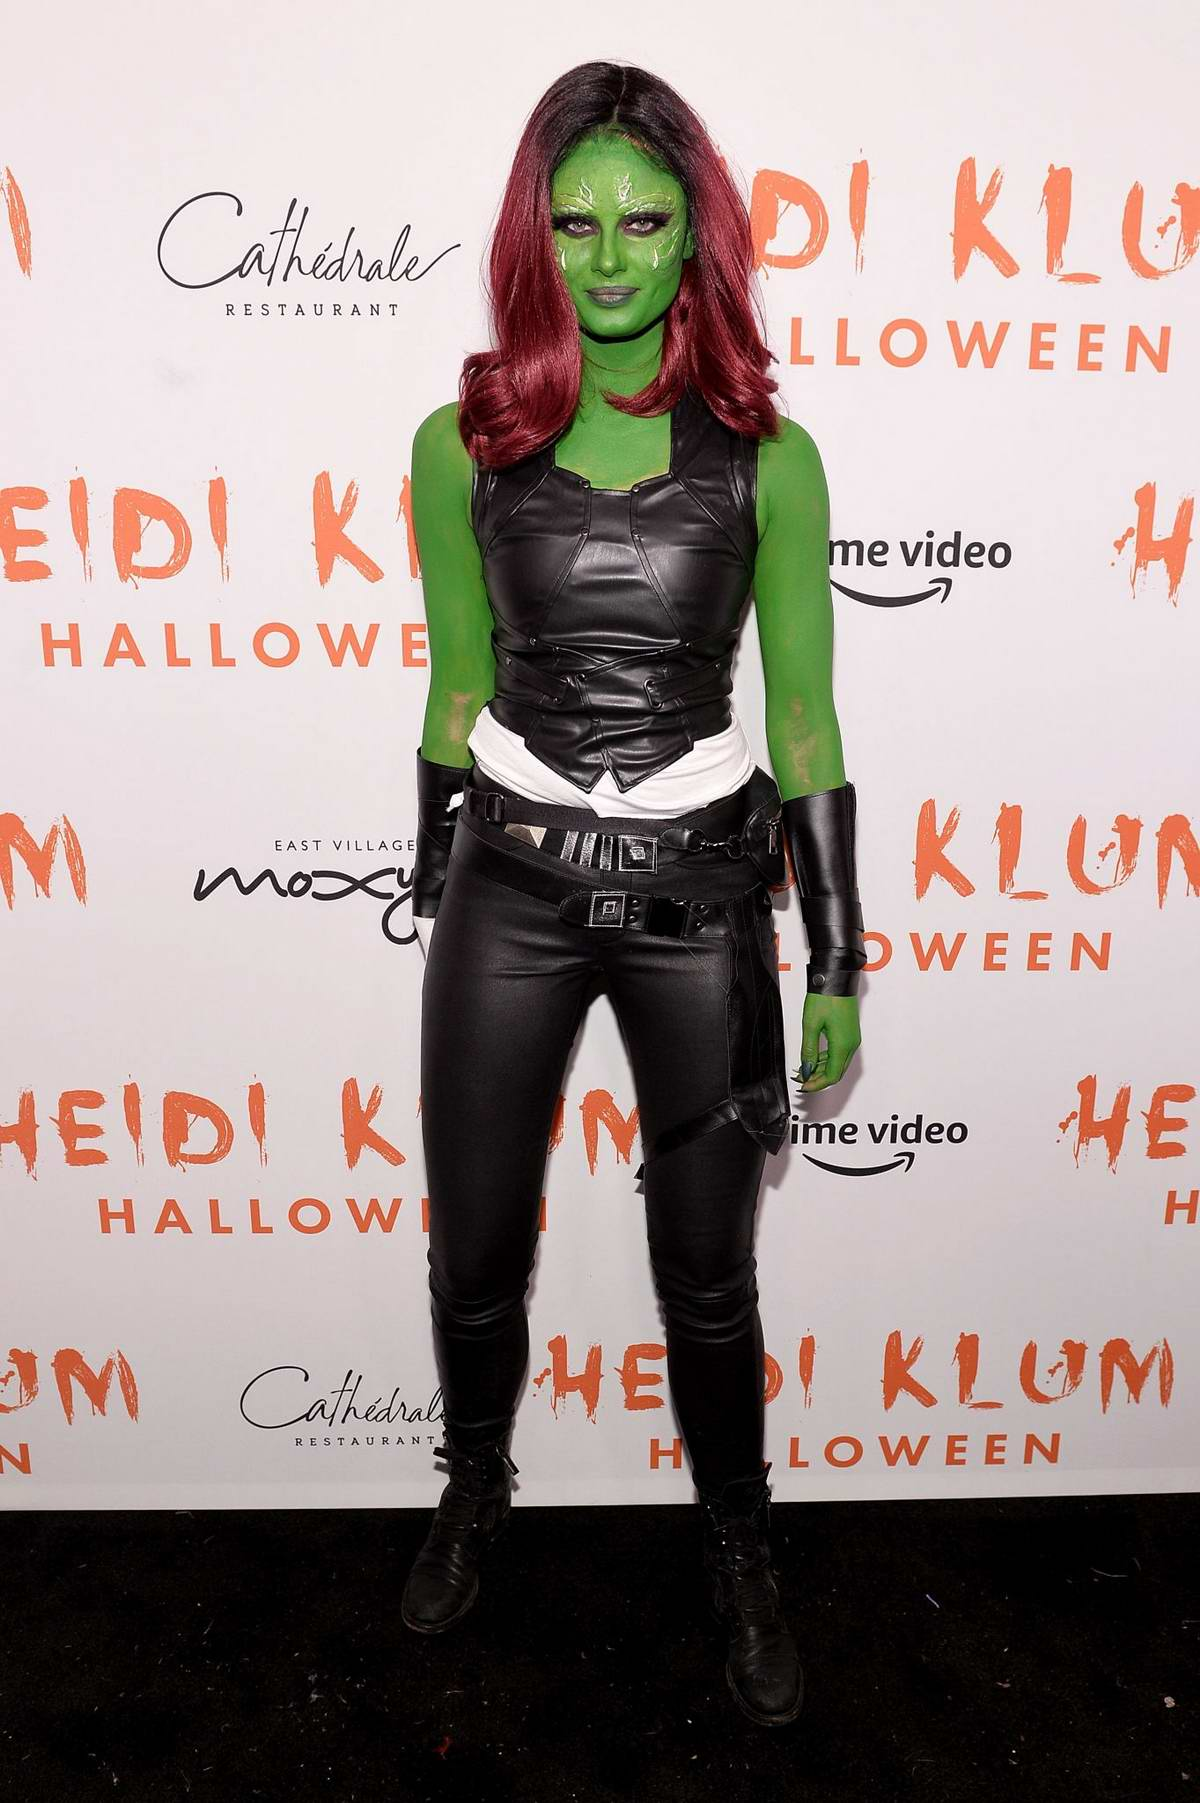 Taylor Hill attends Heidi Klum's 20th Annual Halloween Party at Cathédrale Restaurant in New York City